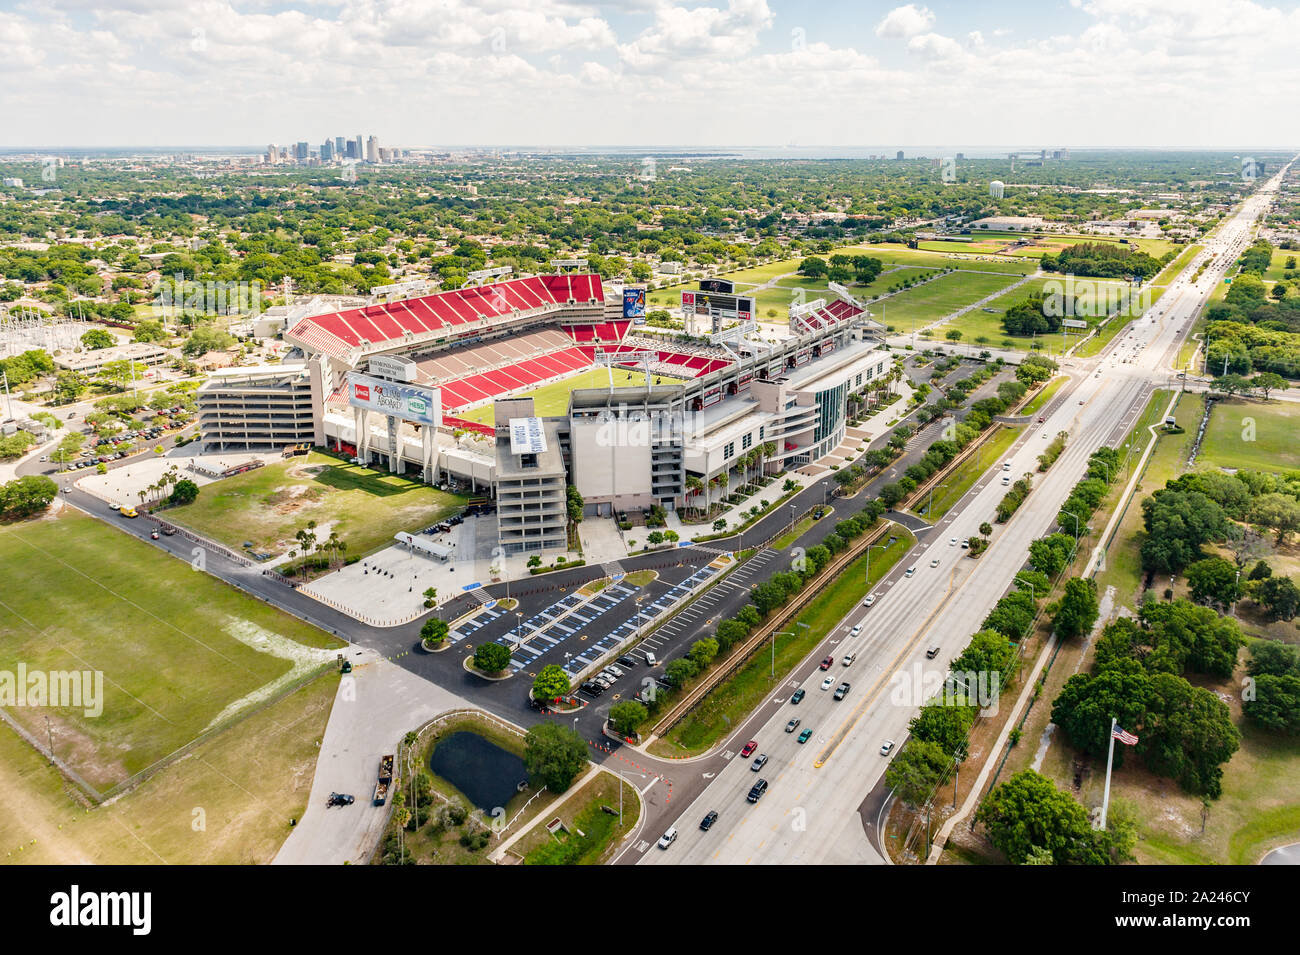 Raymond James Stadium football field and the Tampa or Tampa Bay skyline in an aerial view, Tampa Florida, USA. Stock Photo